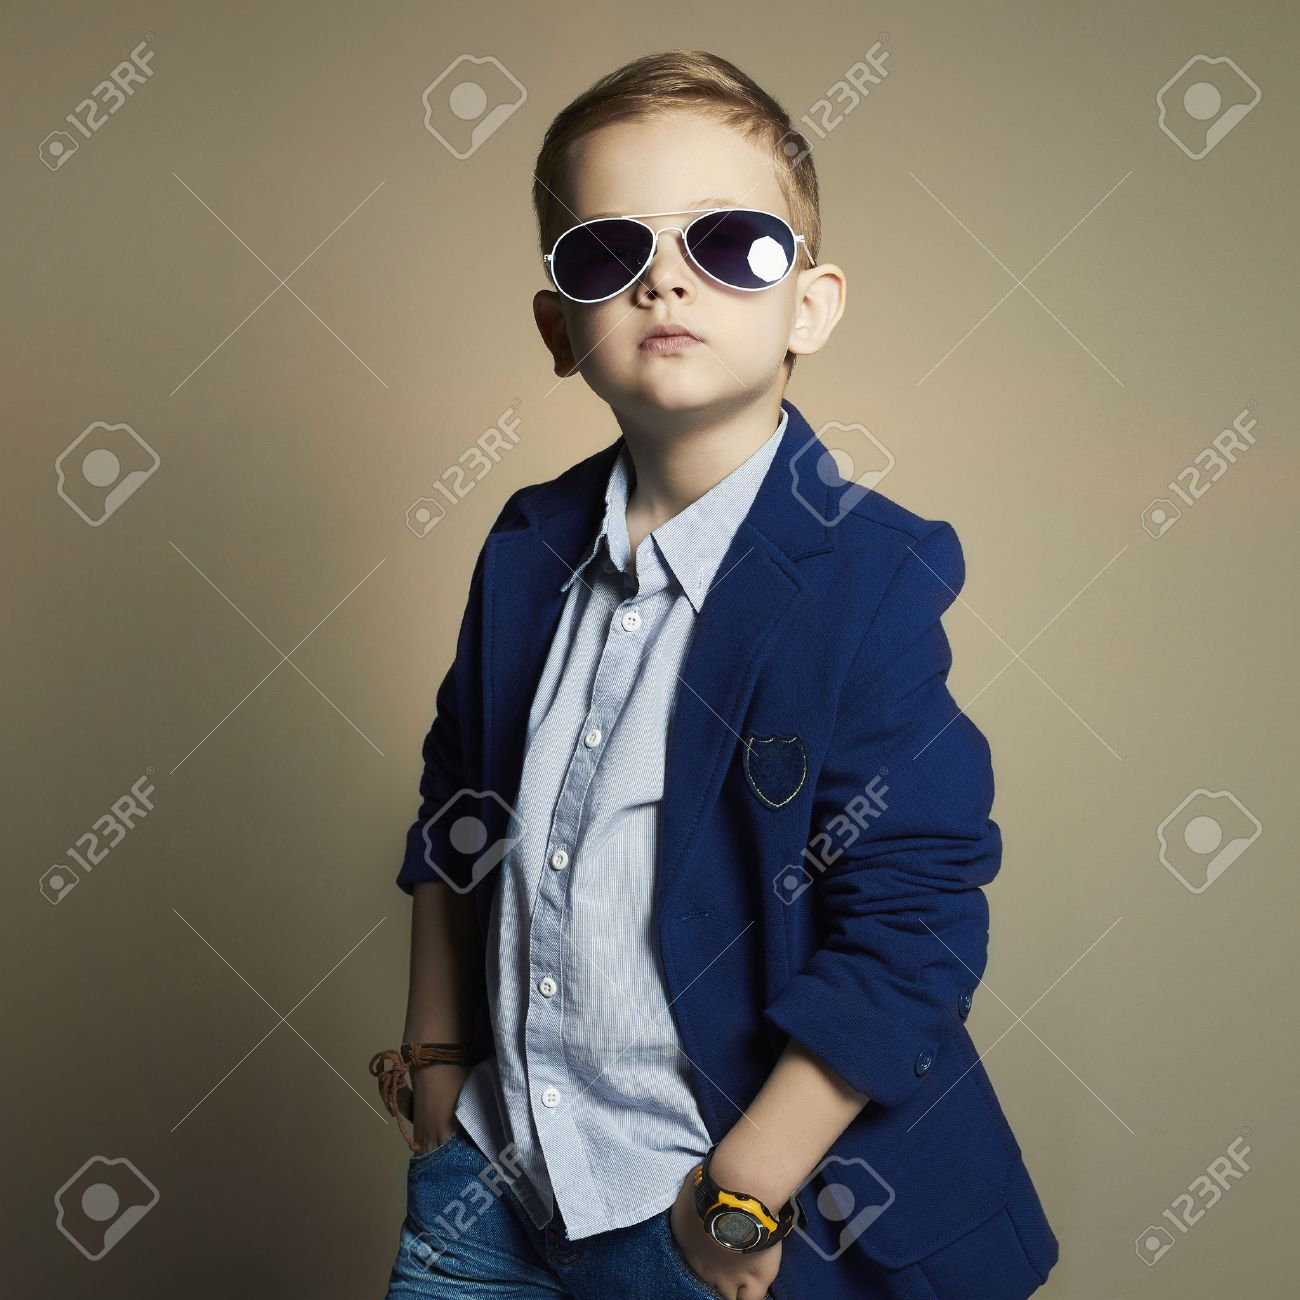 fashionable little boy in sunglasses stylish kid in suit fashion